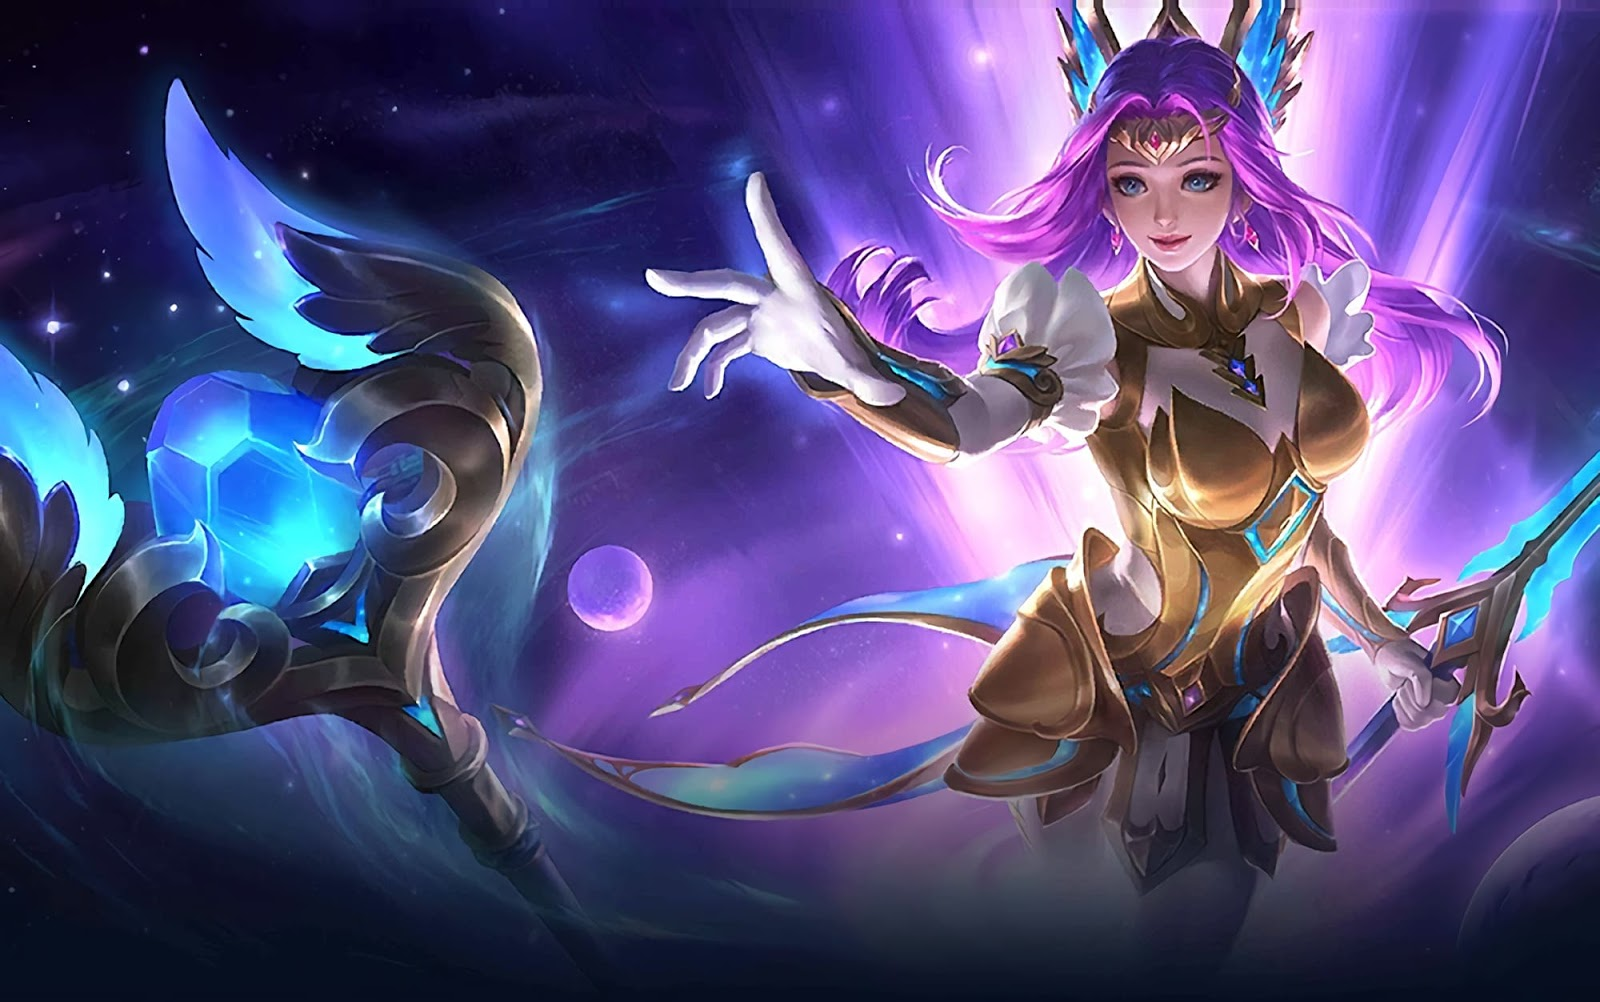 Wallpaper Odette Virgo Skin Mobile Legends HD for PC